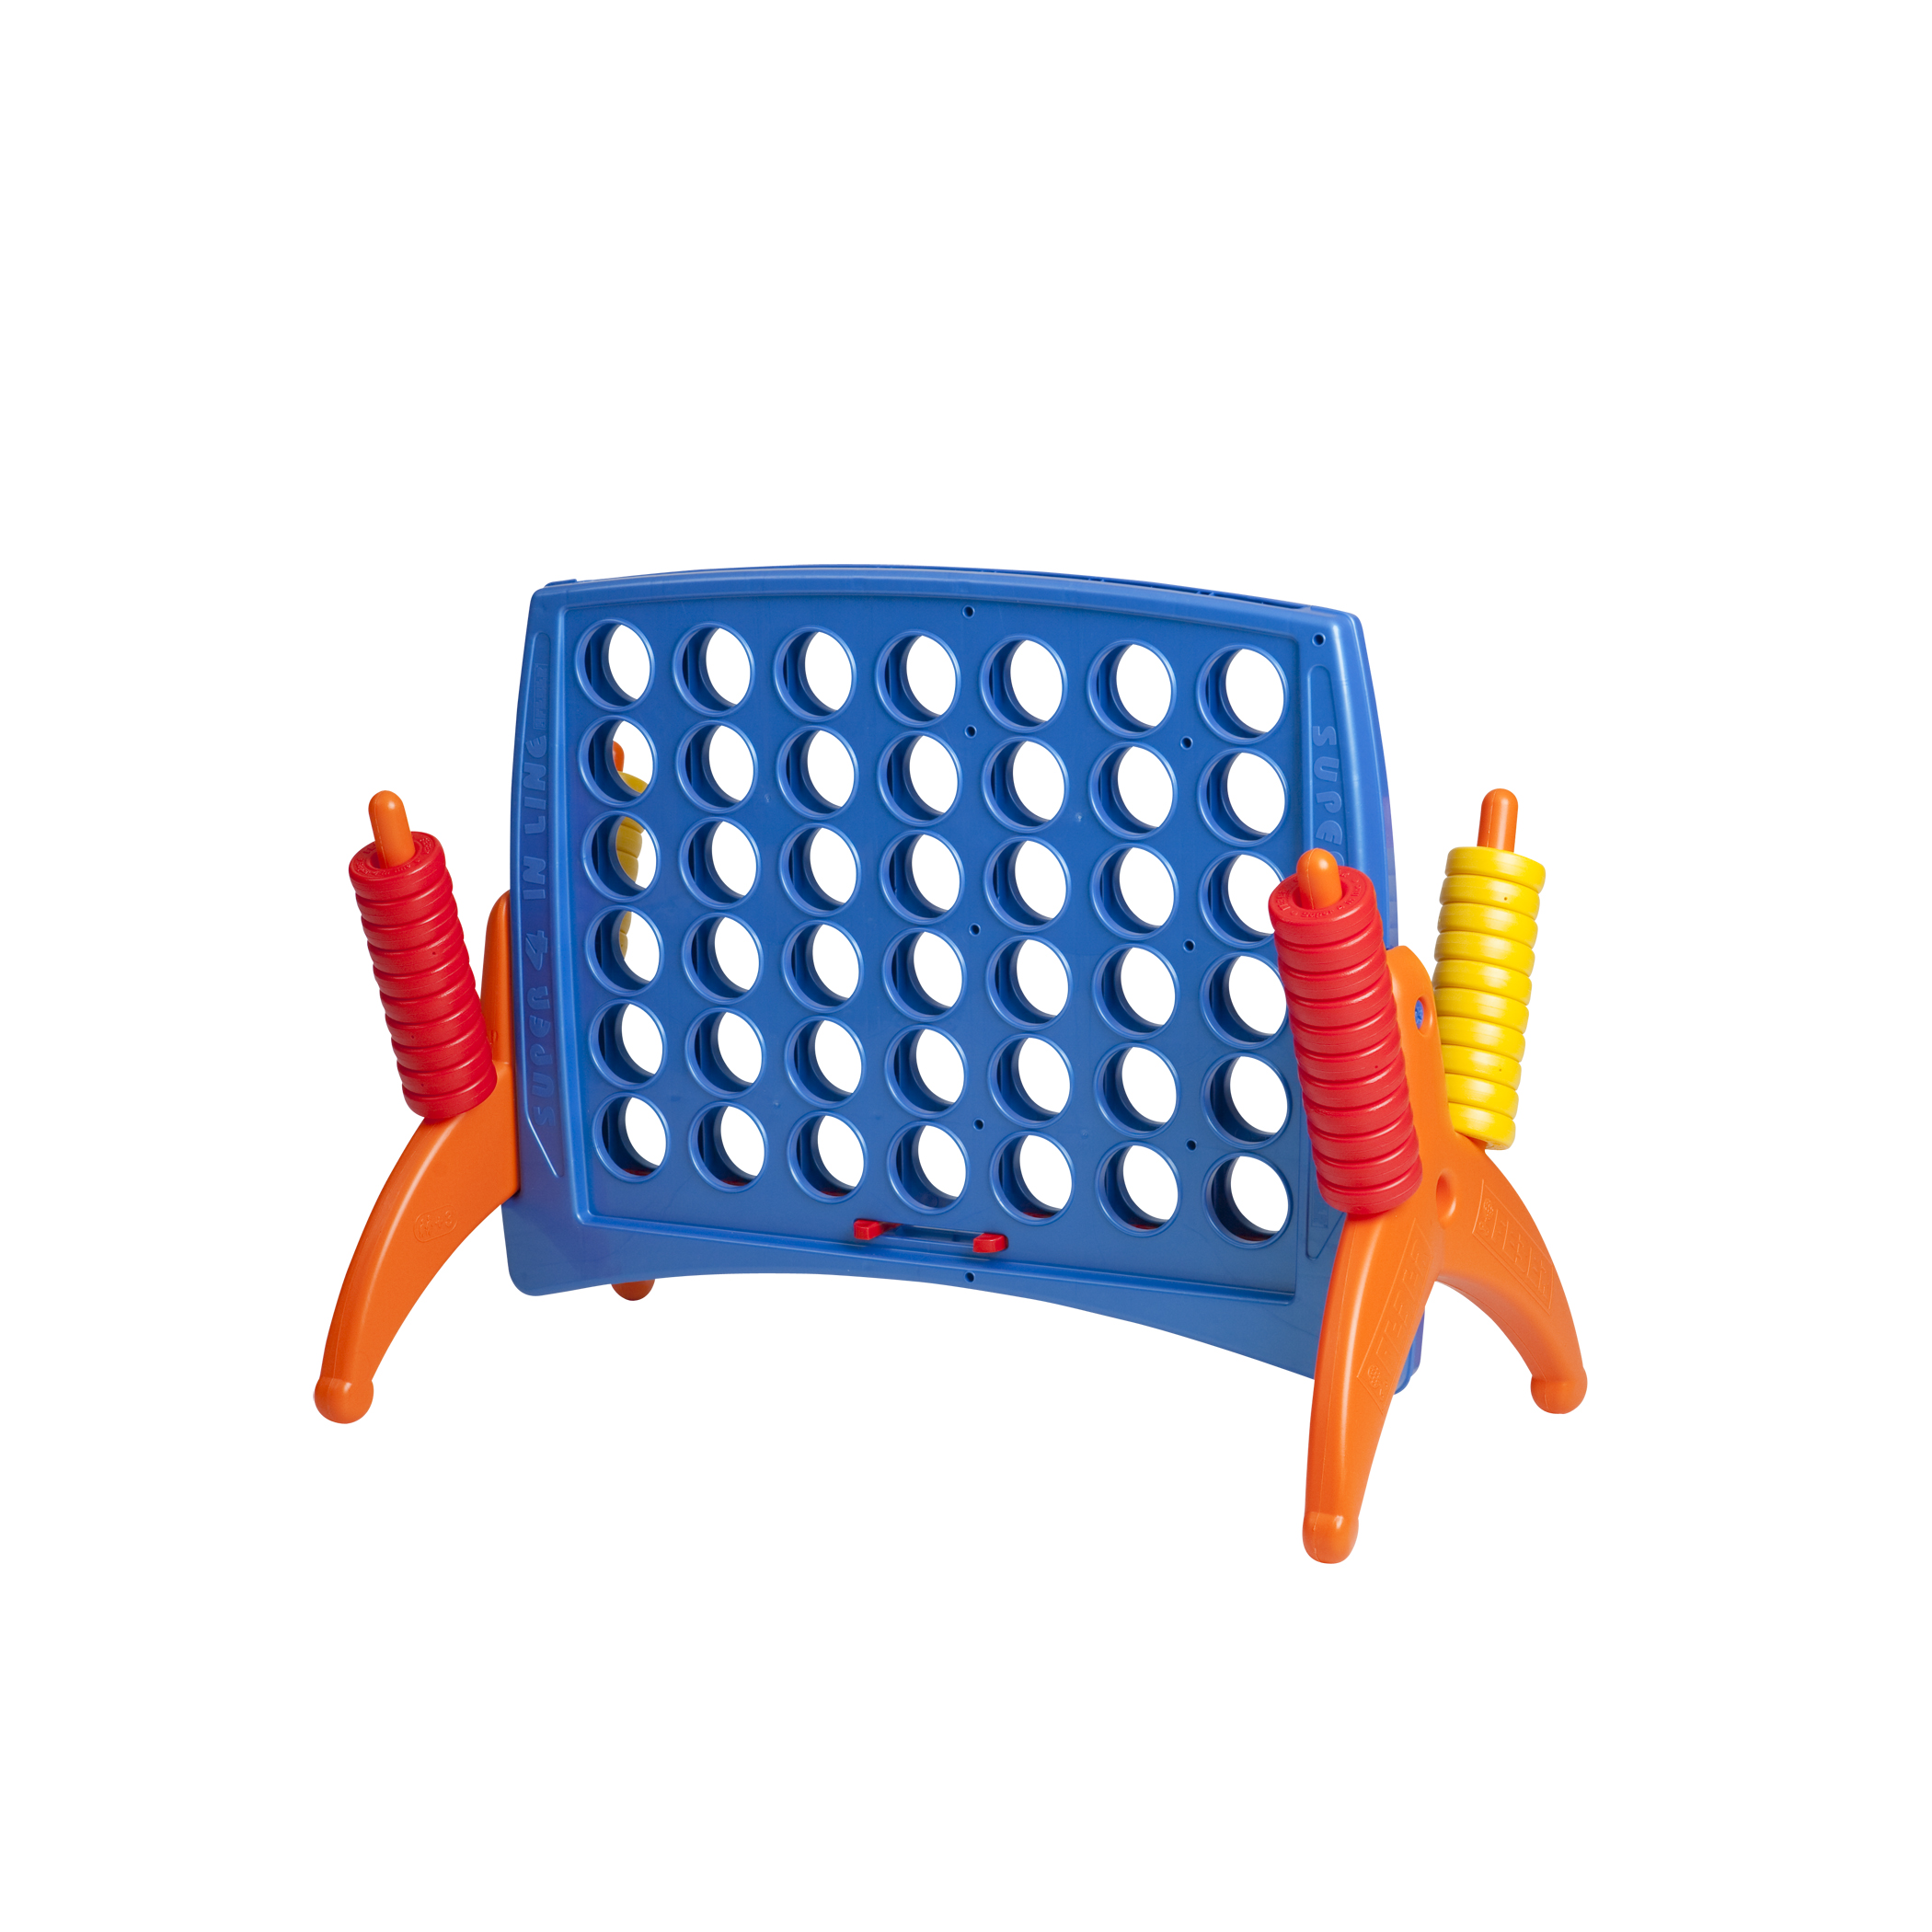 Offex Junior 4-To-Score Oversized Game